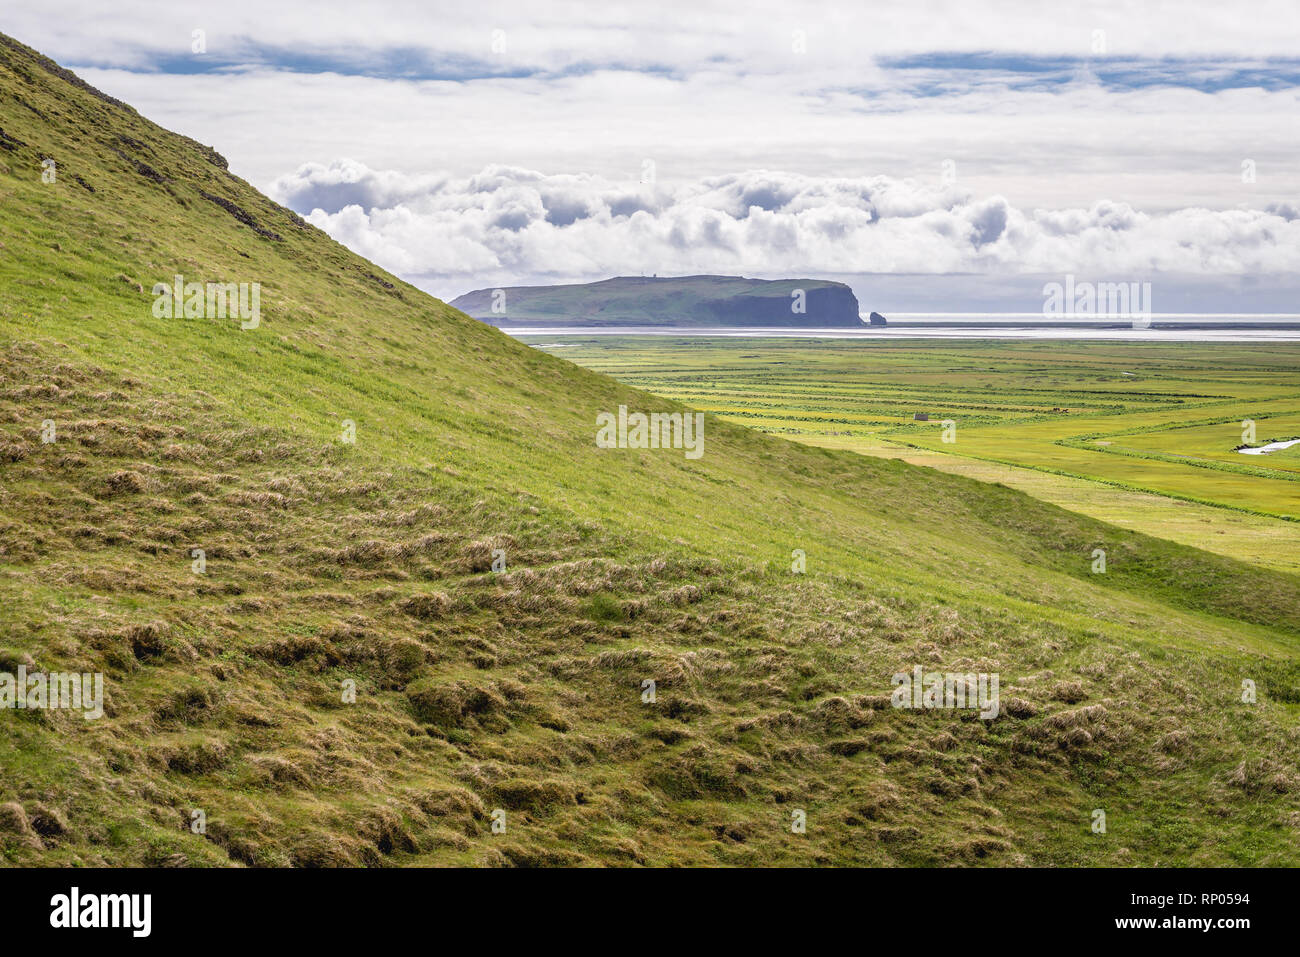 View from so called Aurora Viewing Spot in Iceland with Dyrholaey promontory - Stock Image